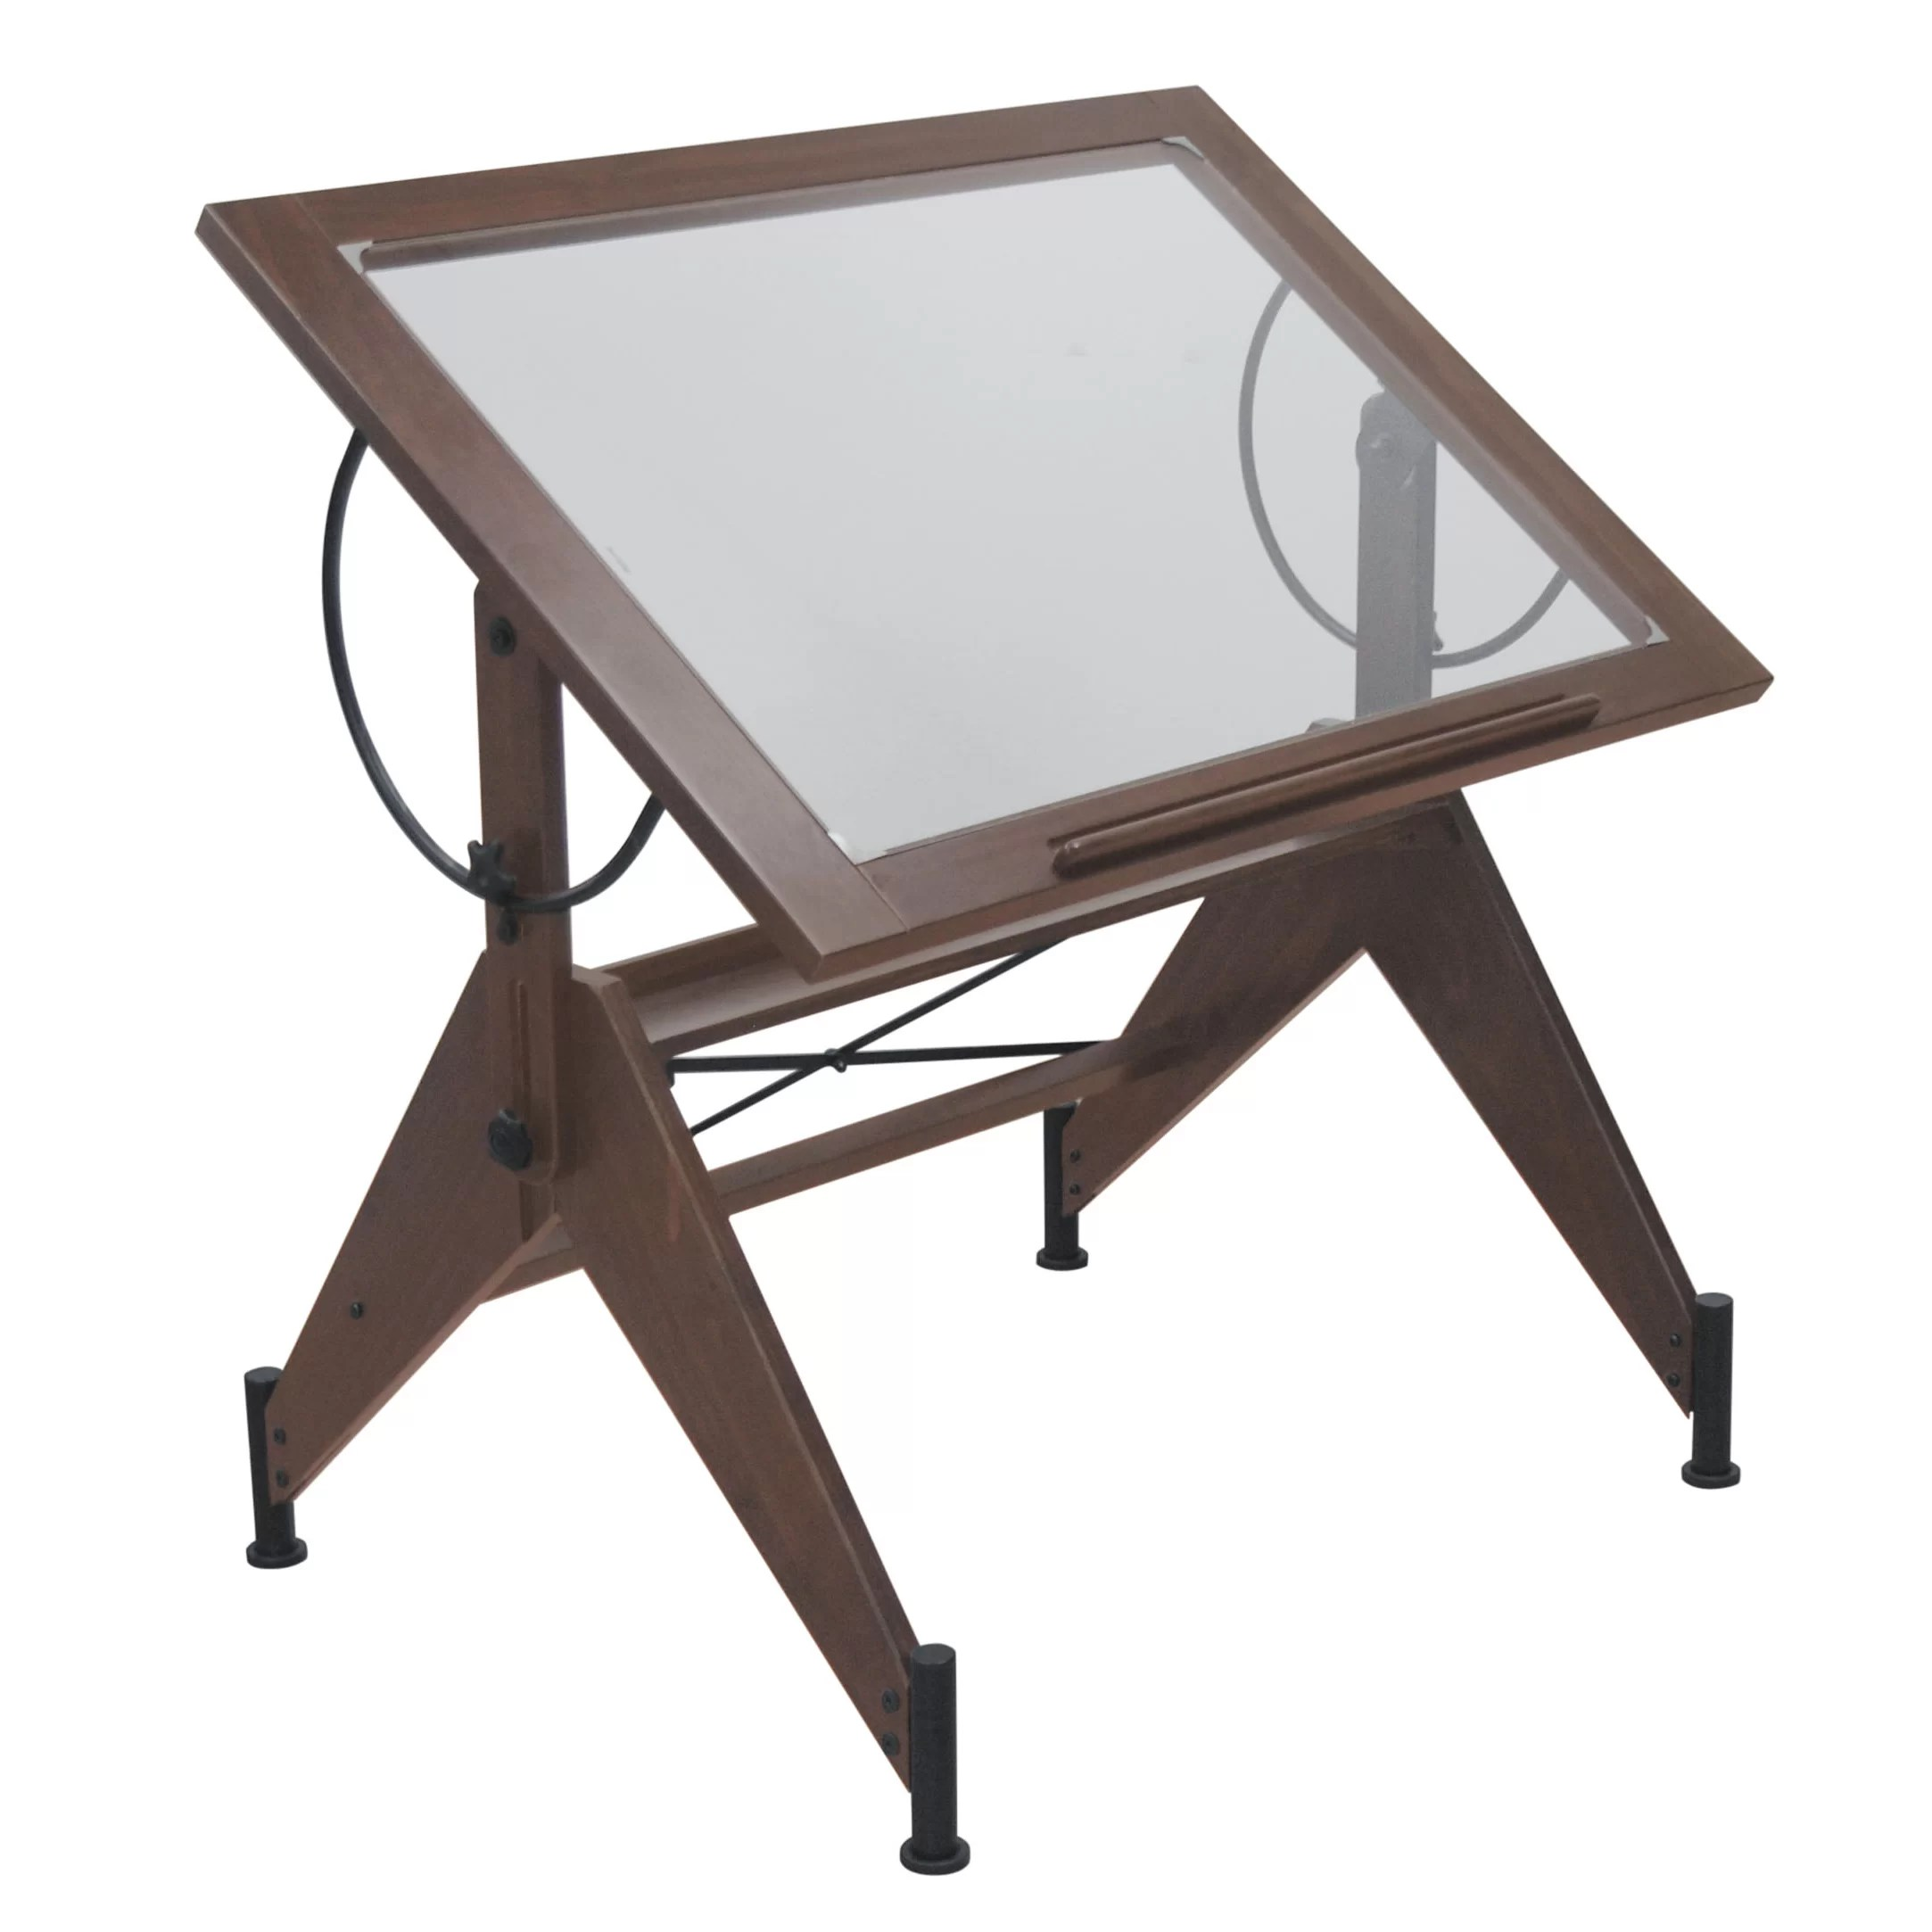 Drafting Table Design Studio Designs Aries Glass Drafting Table And Reviews Wayfair